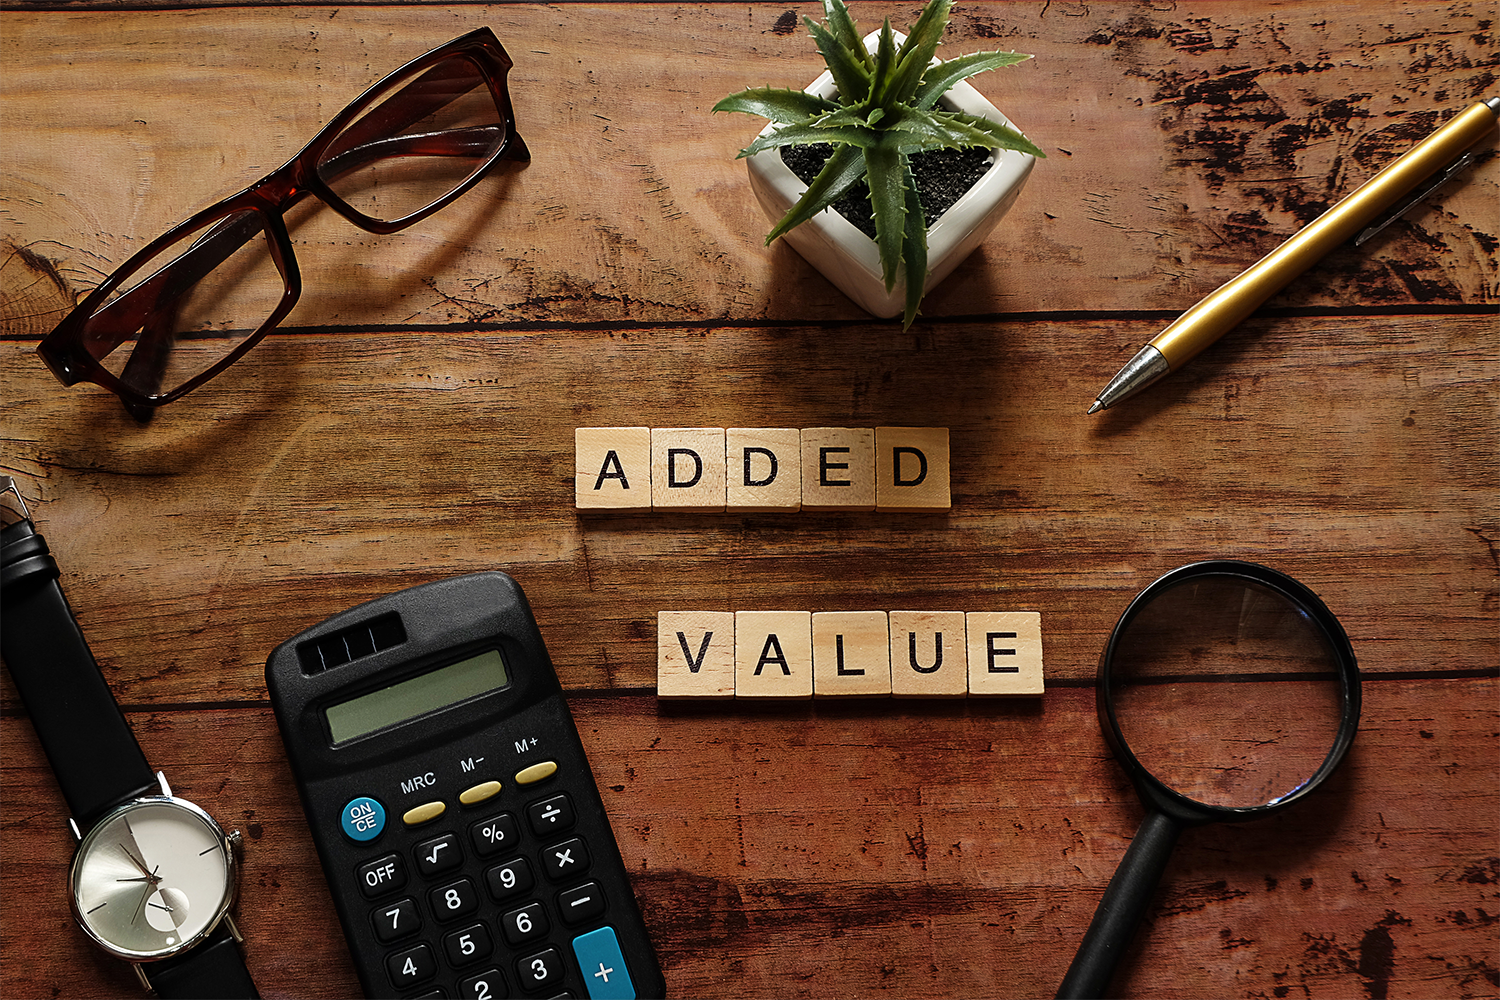 Top view wood text Added value with brown glasses,calculator,gold pen,black watch,magnifying glass and white pot plant.